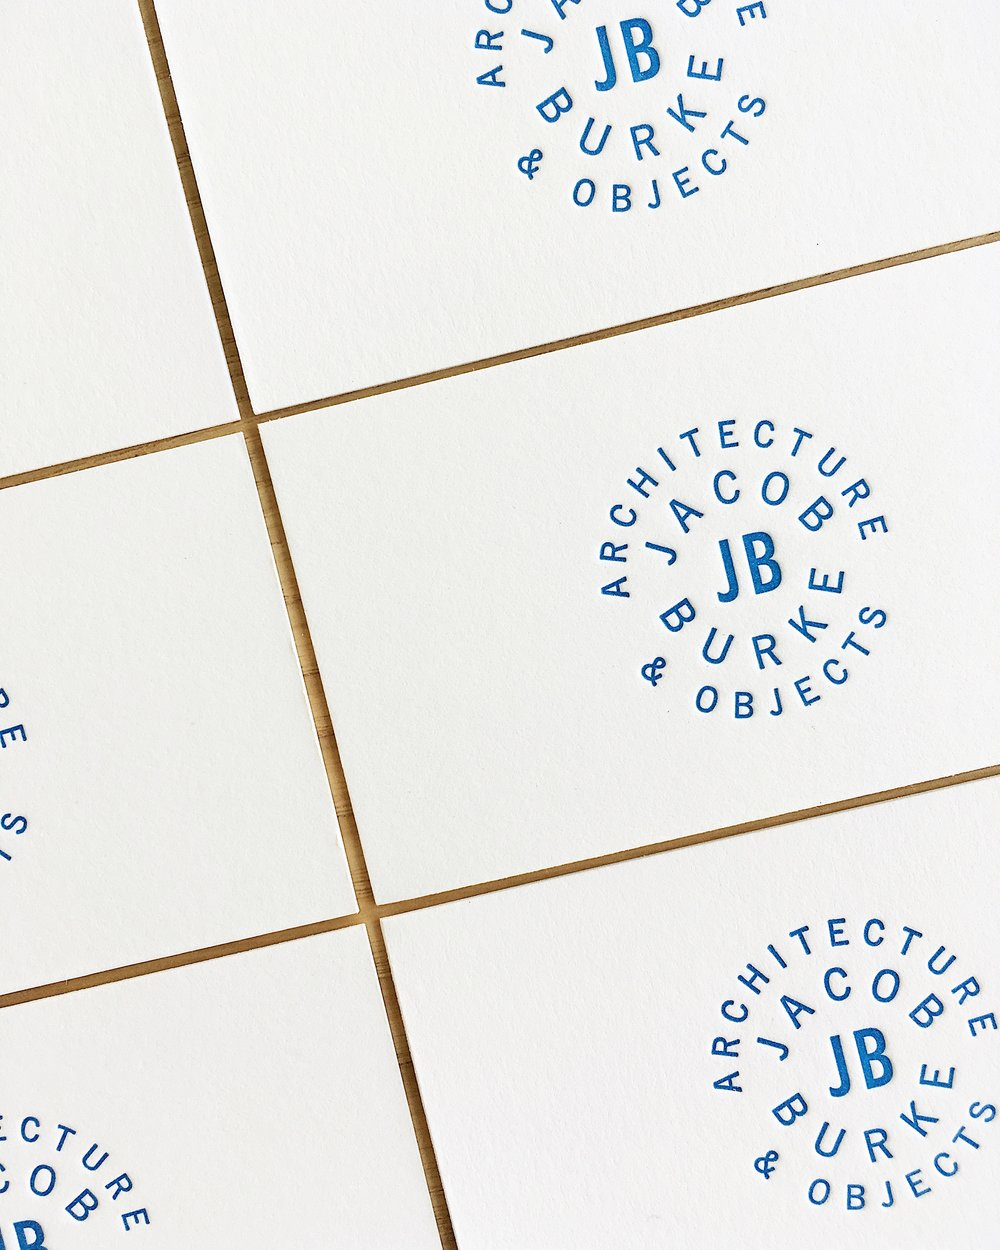 Design & Letterpress by Good South / Jacob Burke Logo & Letterpress Business Card